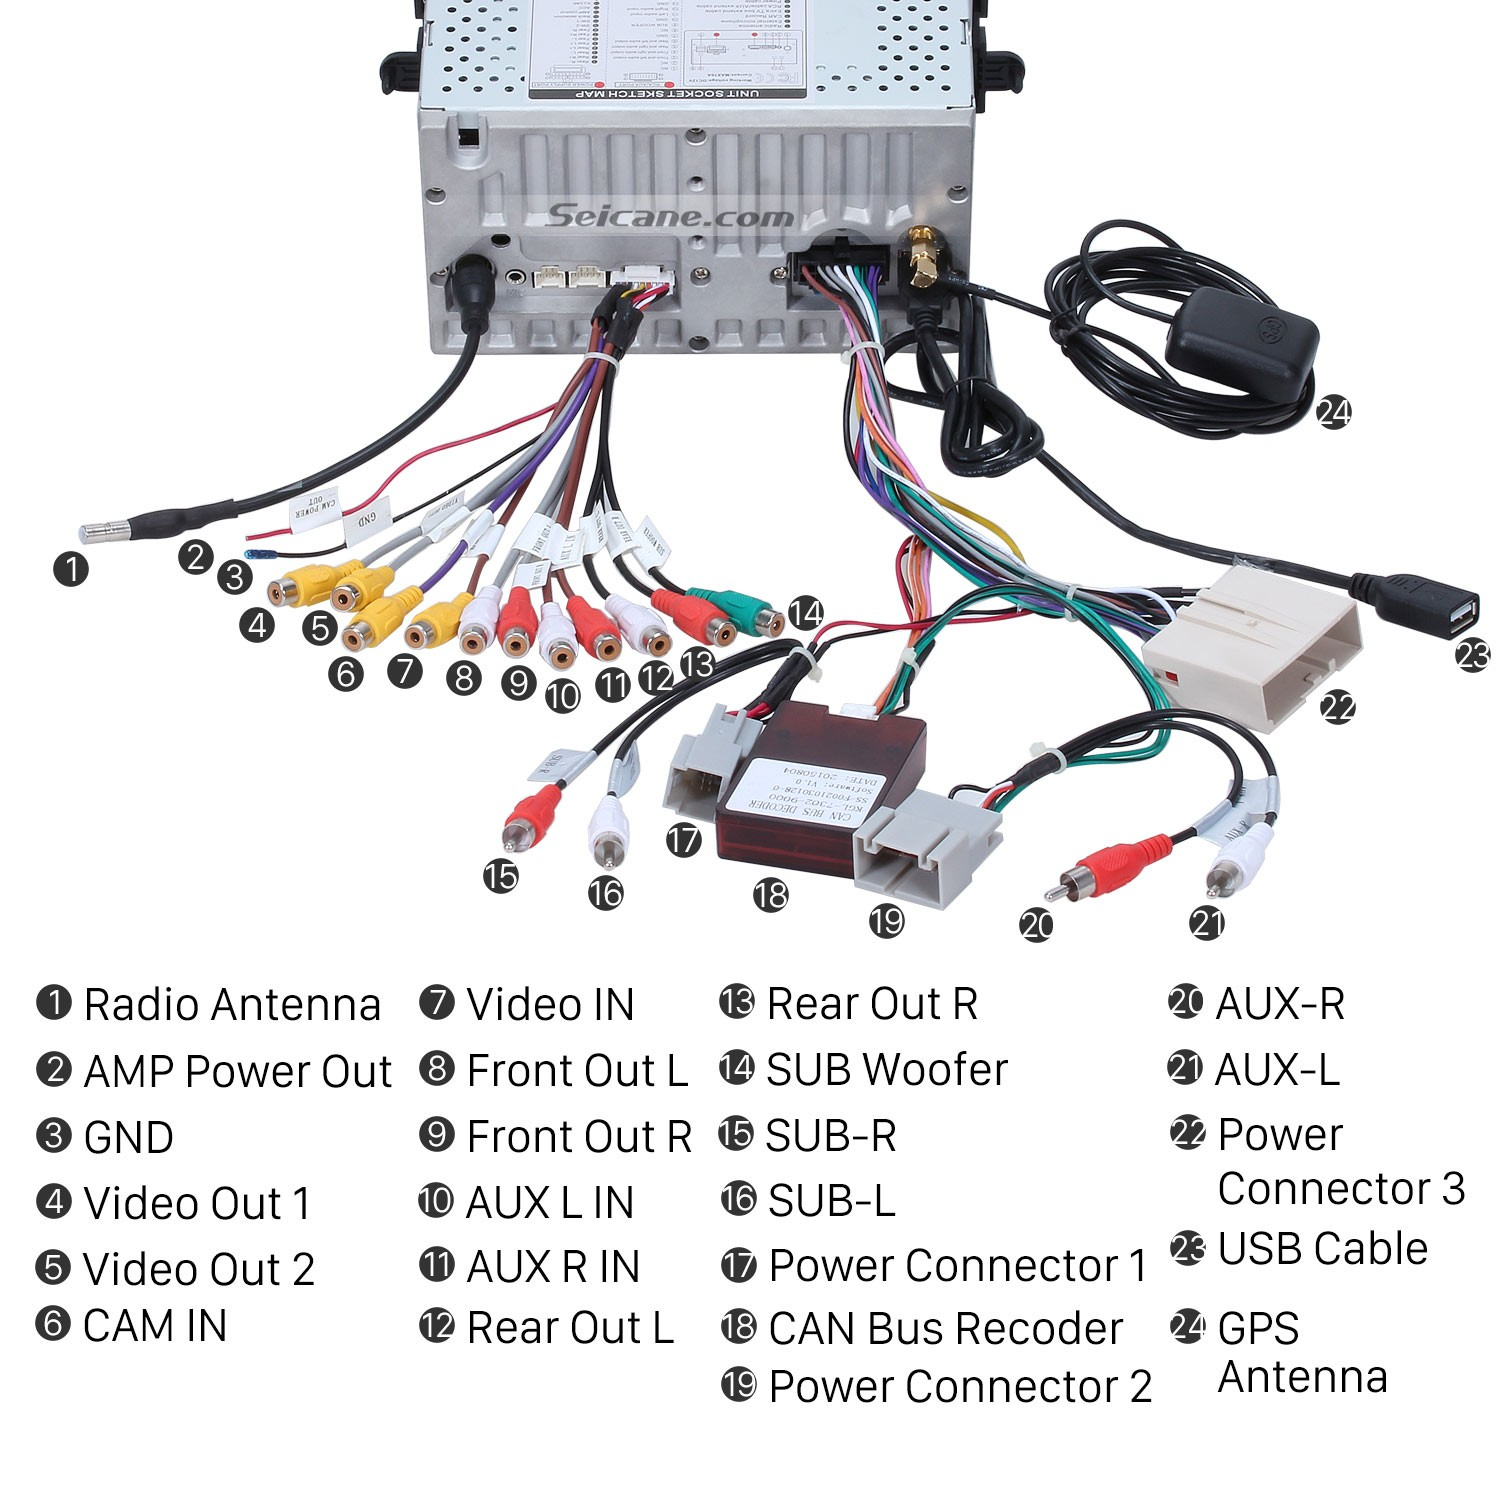 2010 Ford Focus Radio Wiring Diagram 36 Images F 150 Color Codes Connect The Harnesses To Back Of New Seicane Car 2004